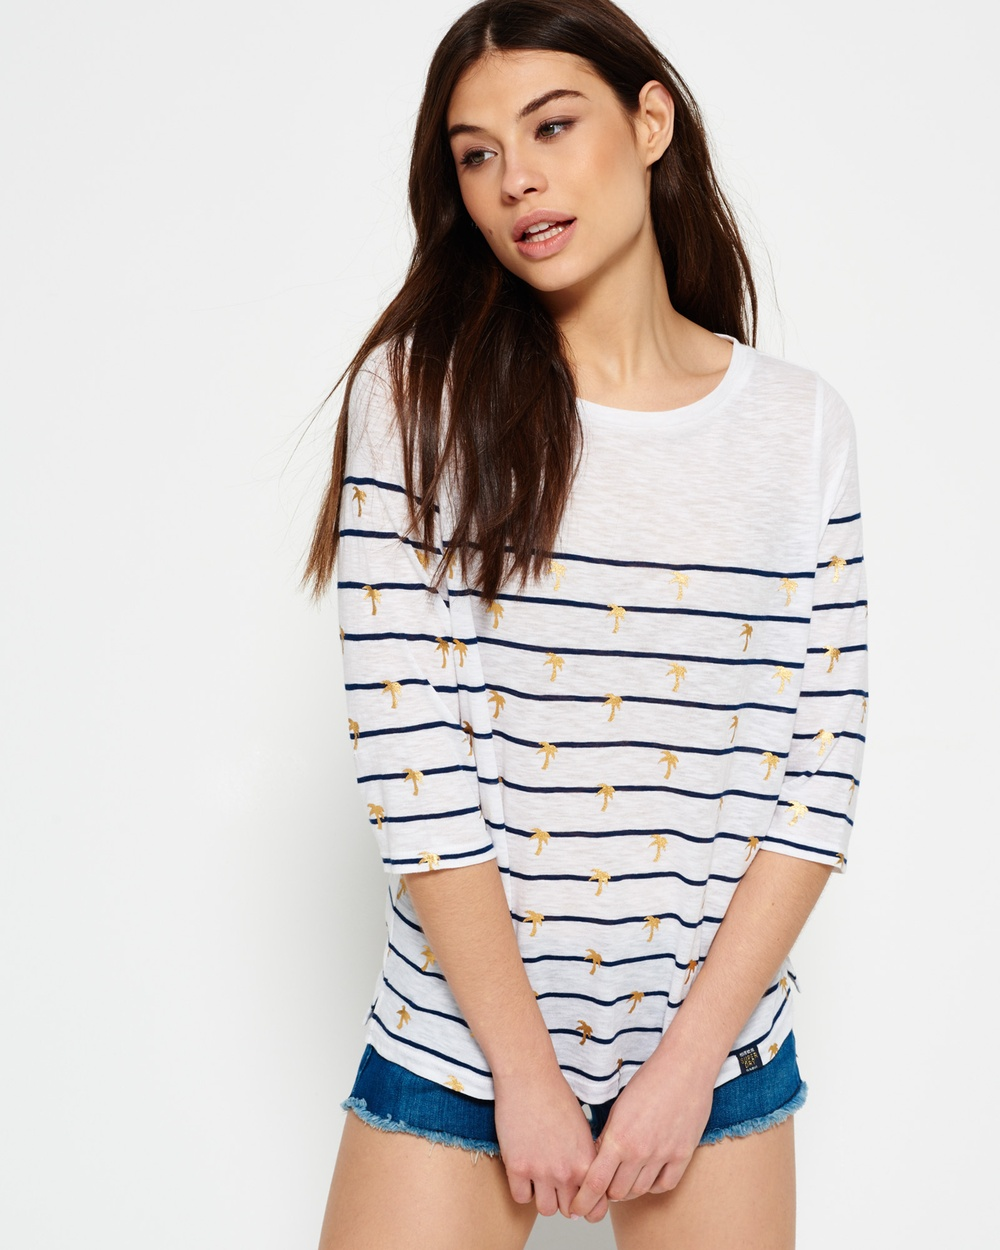 Superdry Conversational Breton Top Tops Stripe Palm Conversational Breton Top